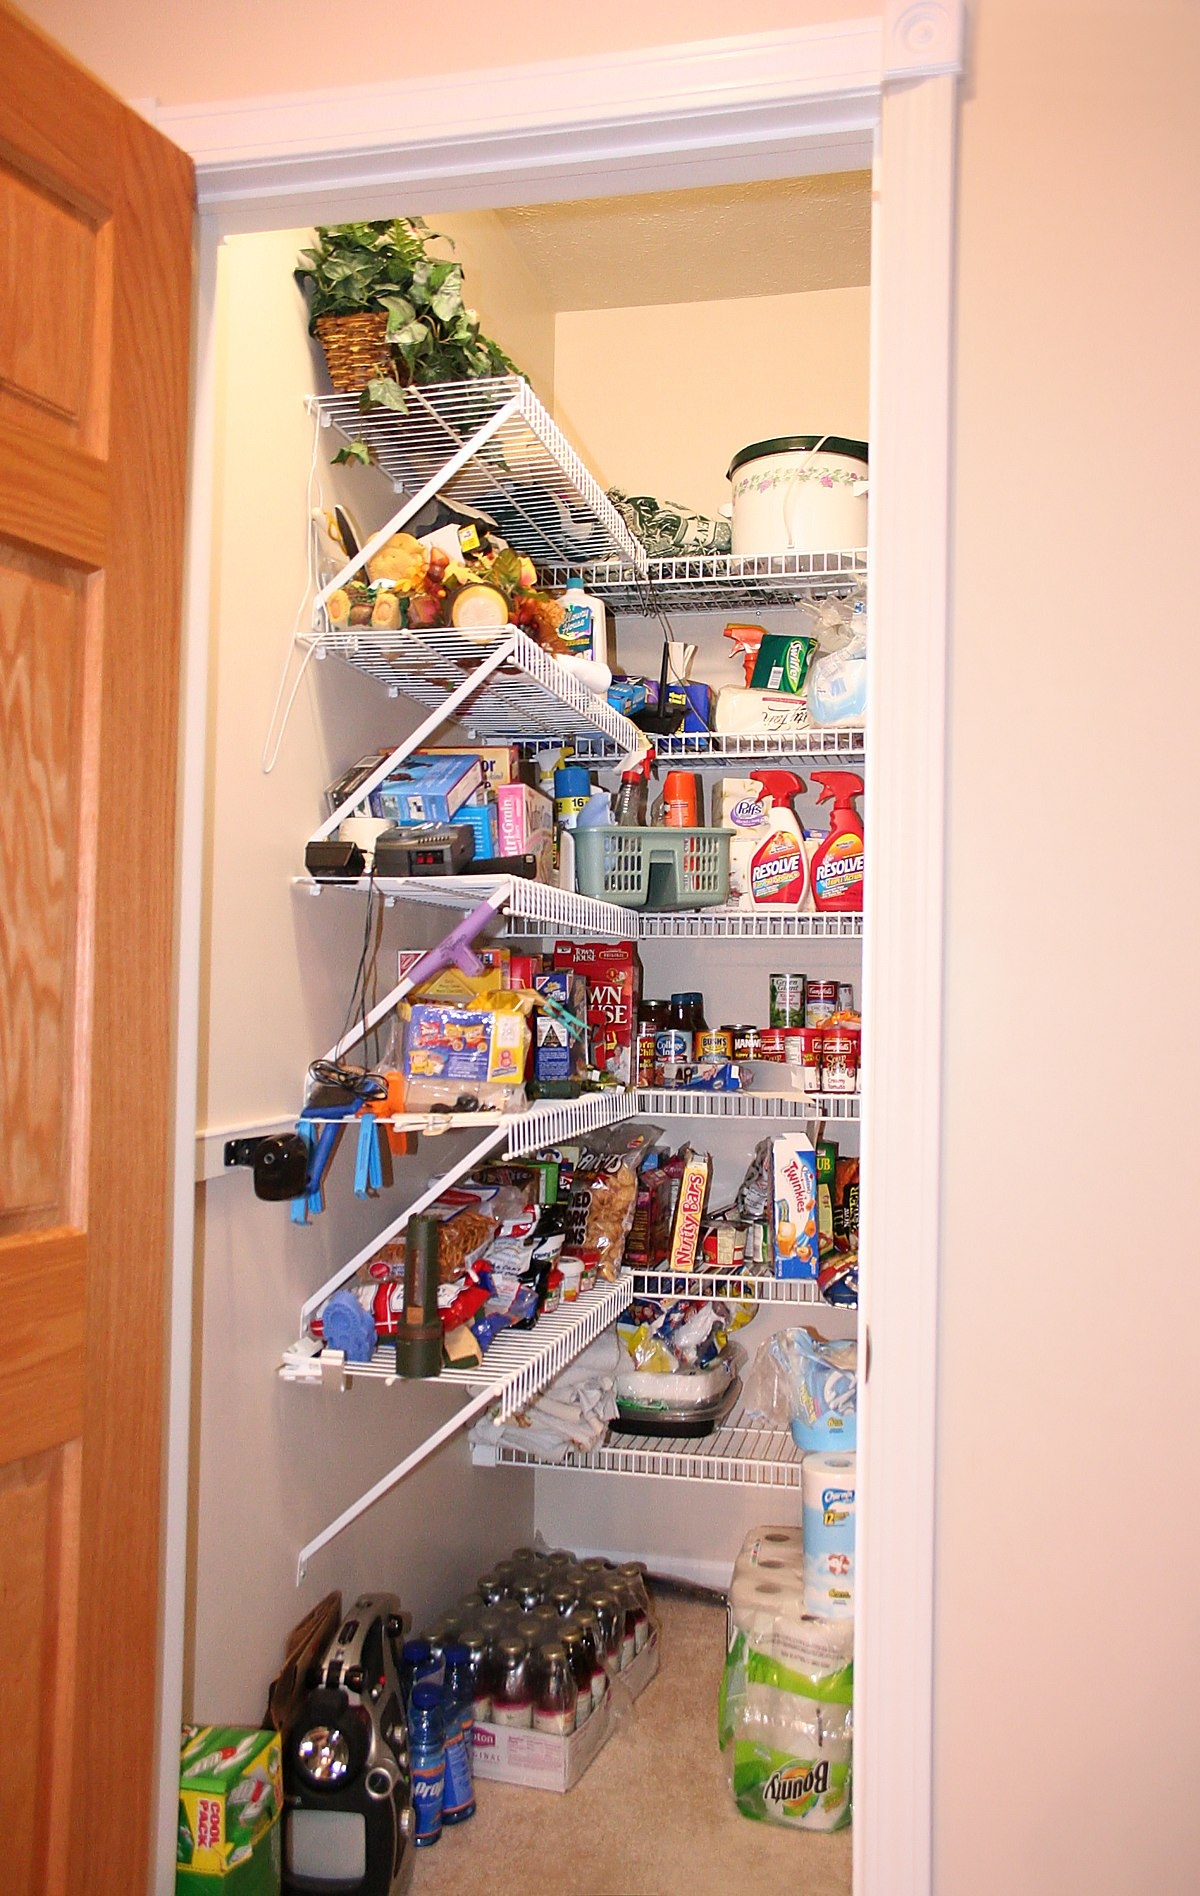 big pantrys you pantry organize ideas to a kitchen help designs your